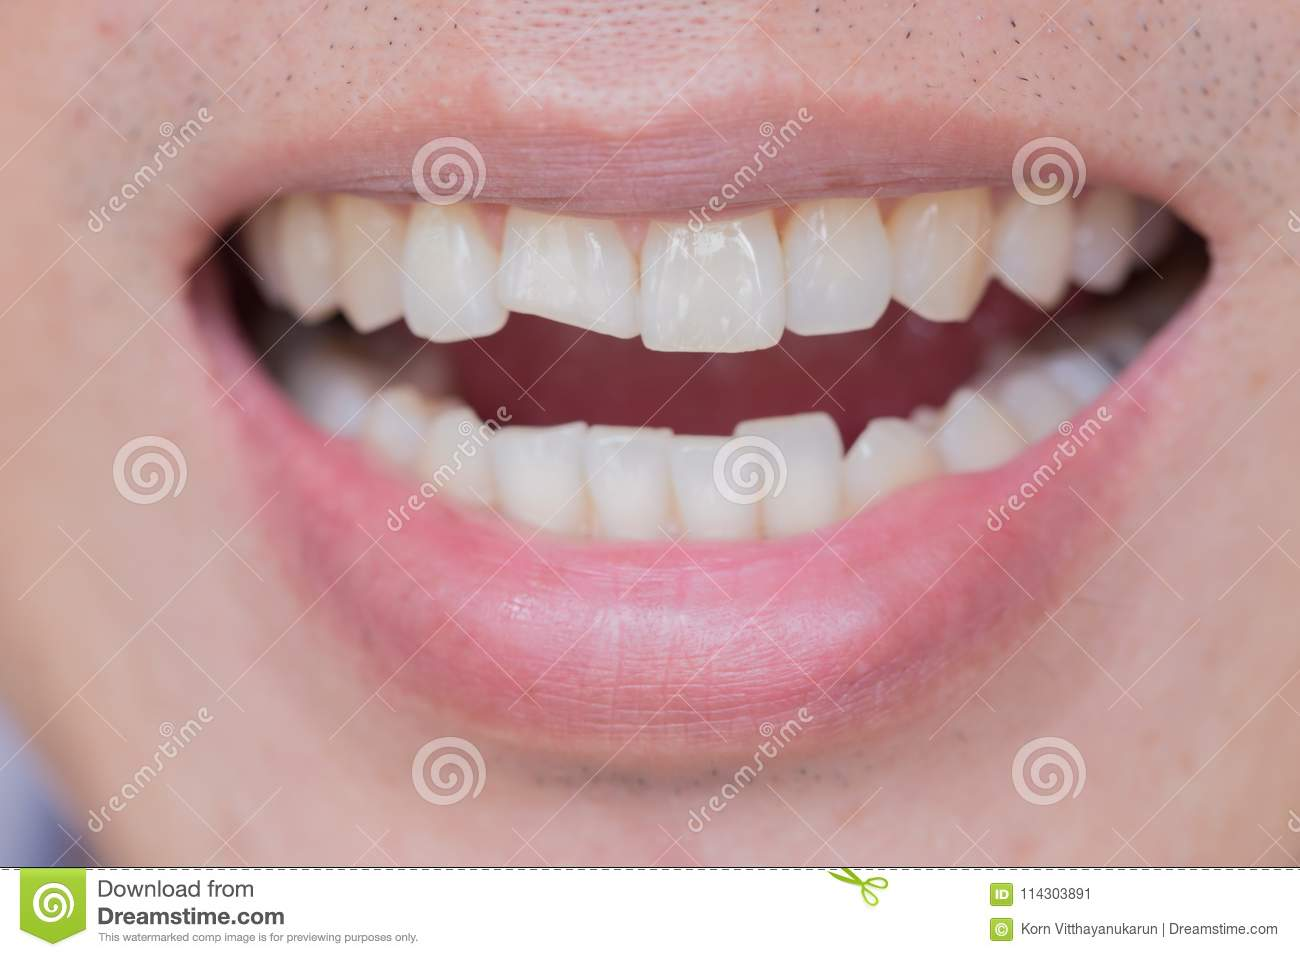 Teeth Injuries or Teeth Breaking in Male. Trauma and Nerve Damage of injured tooth